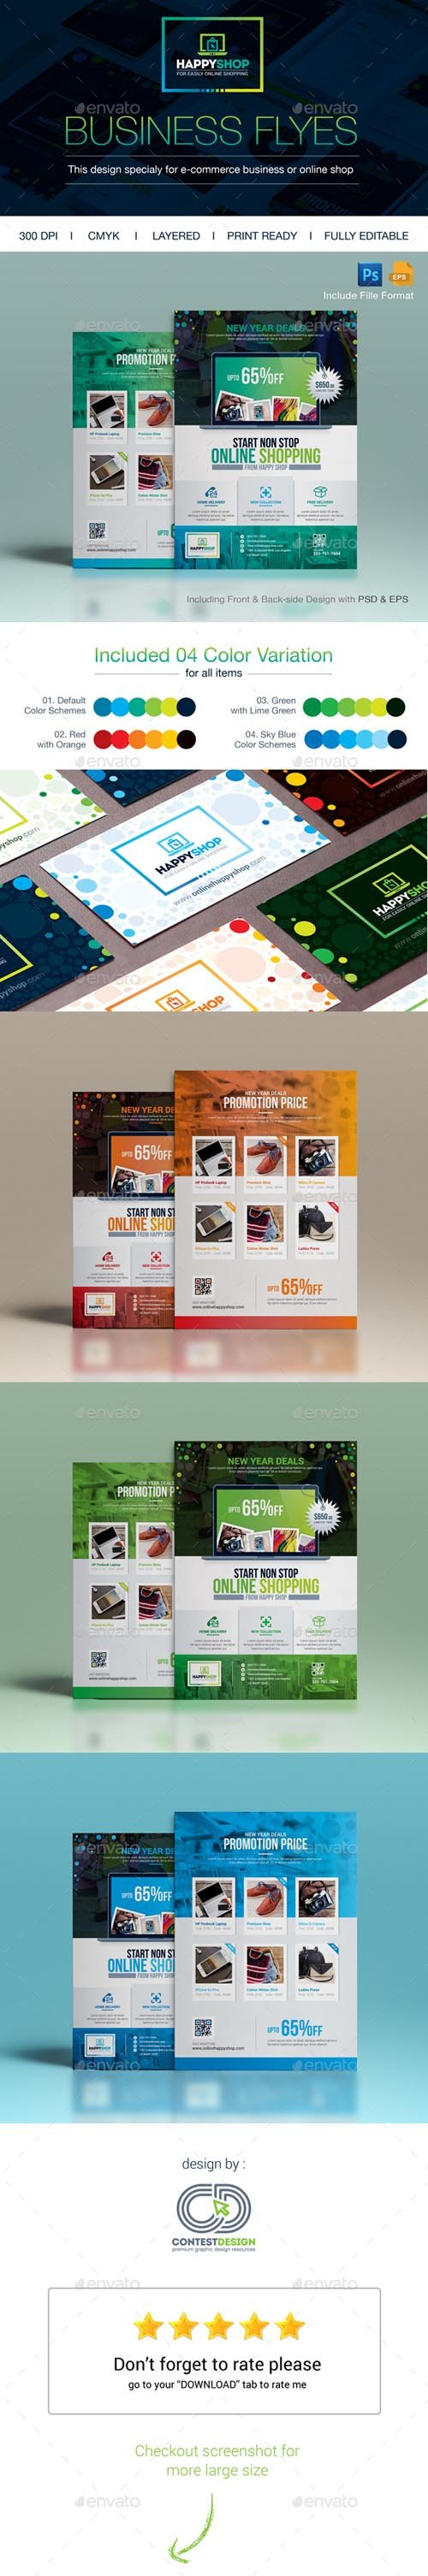 Product Promotional E-Commerce Business Flyers 14456561